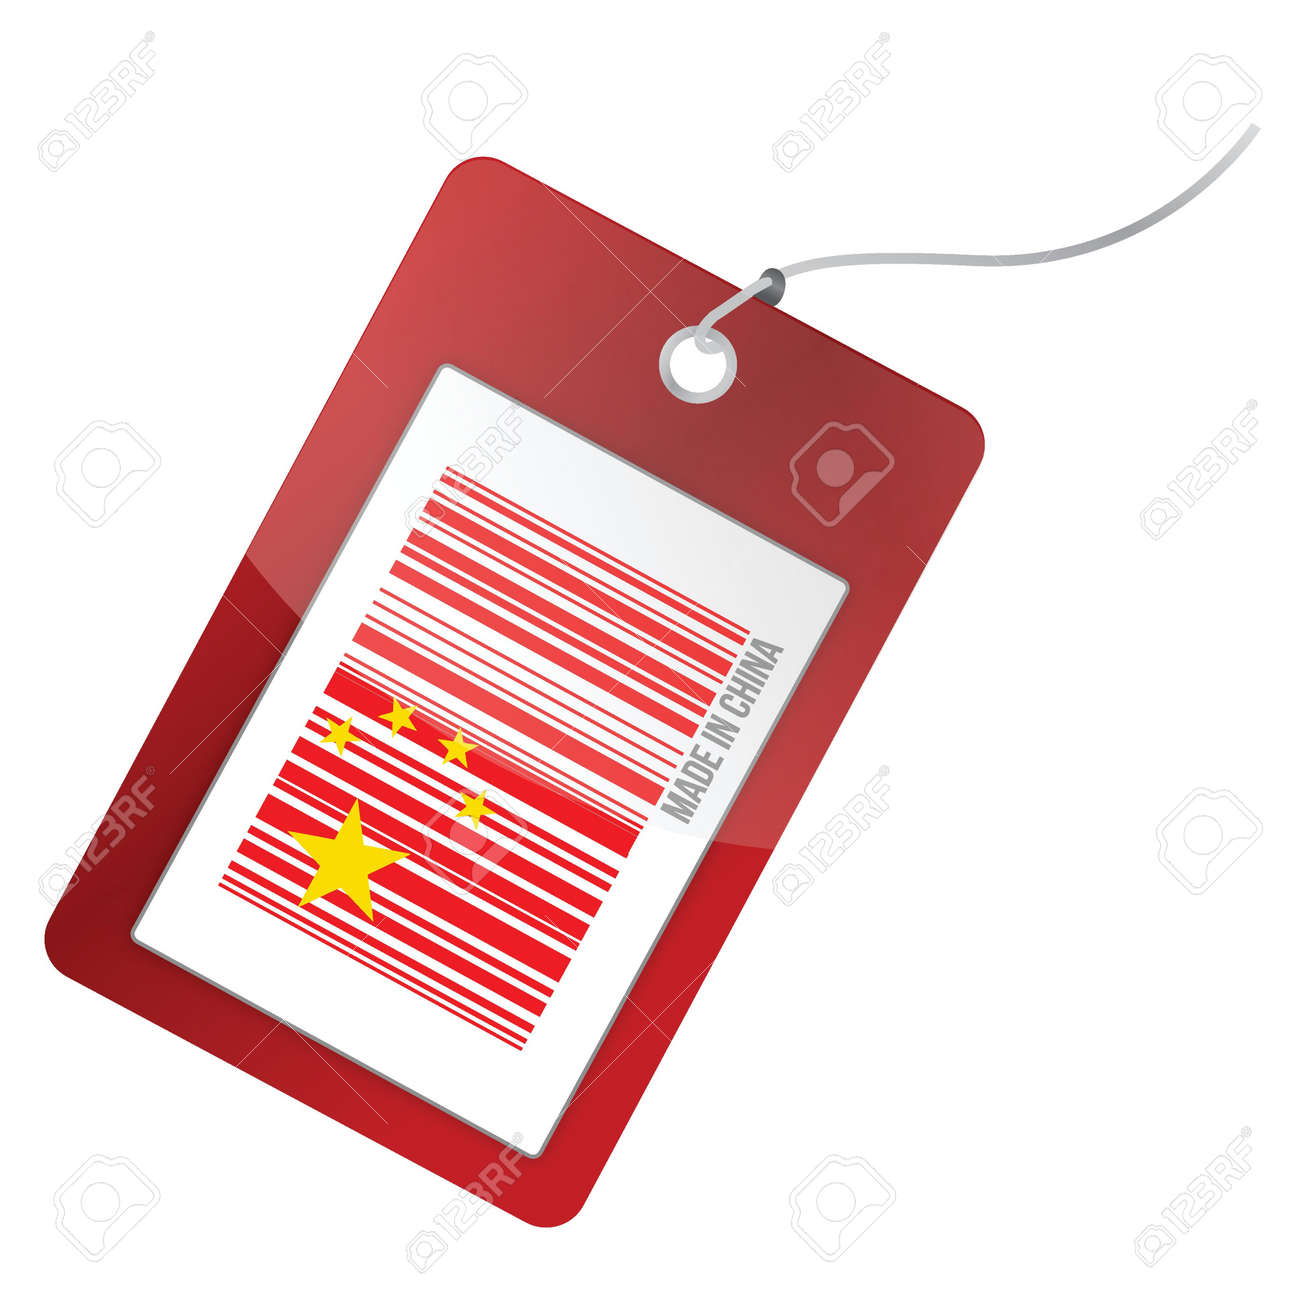 made in china tag barcode illustration design graphic Stock Vector - 17058204